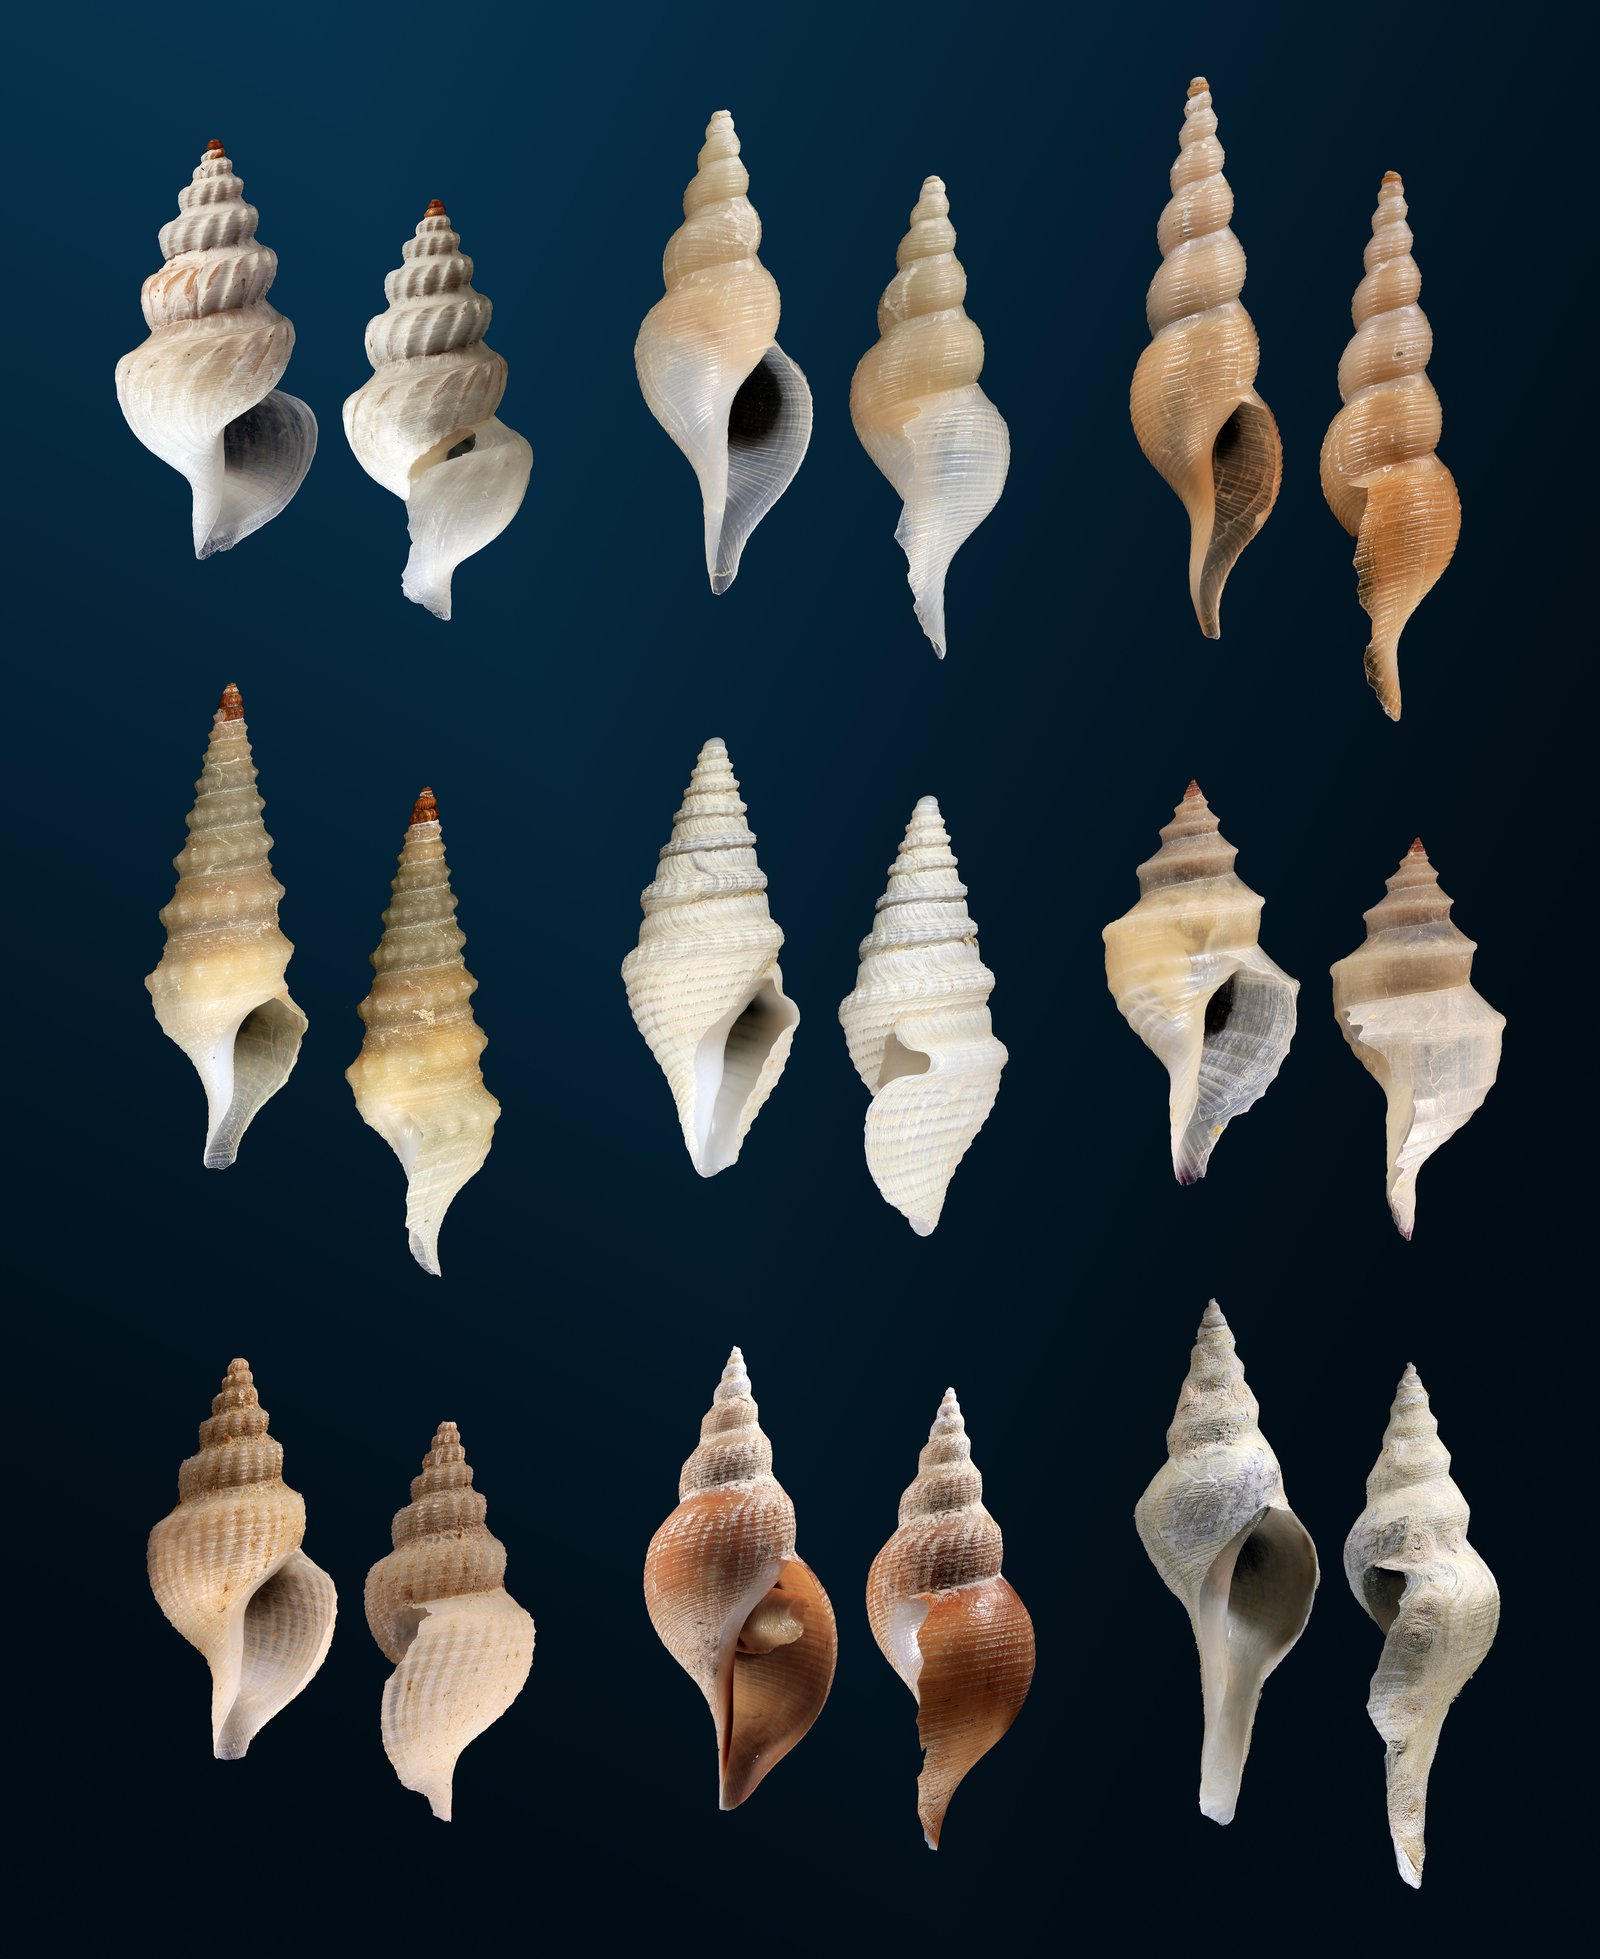 Plate showing shells of Turrid snails